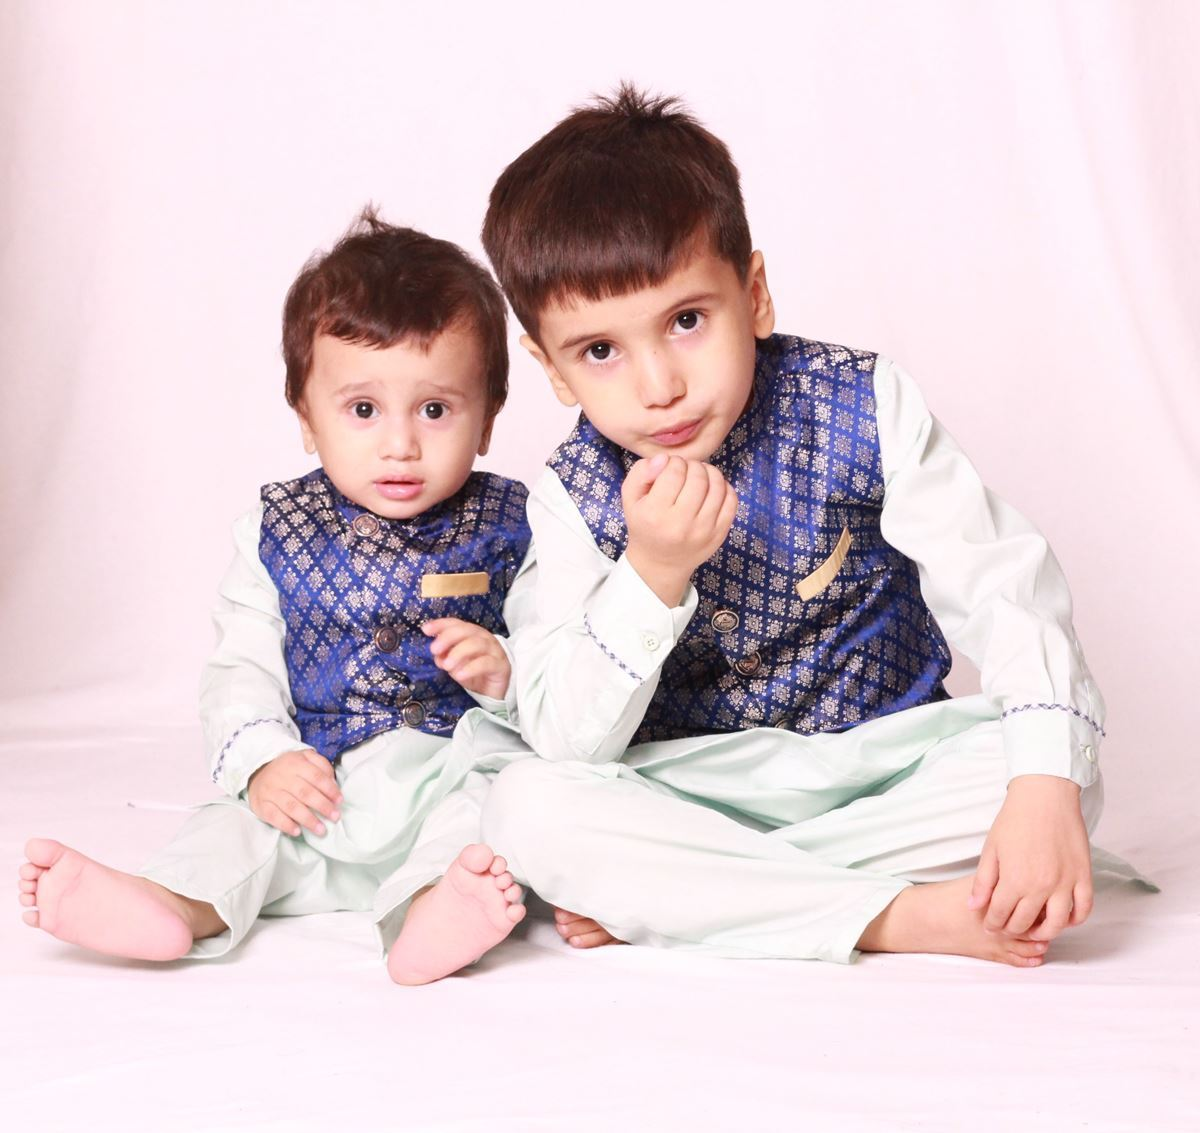 waistcoat for boys by lilchamps